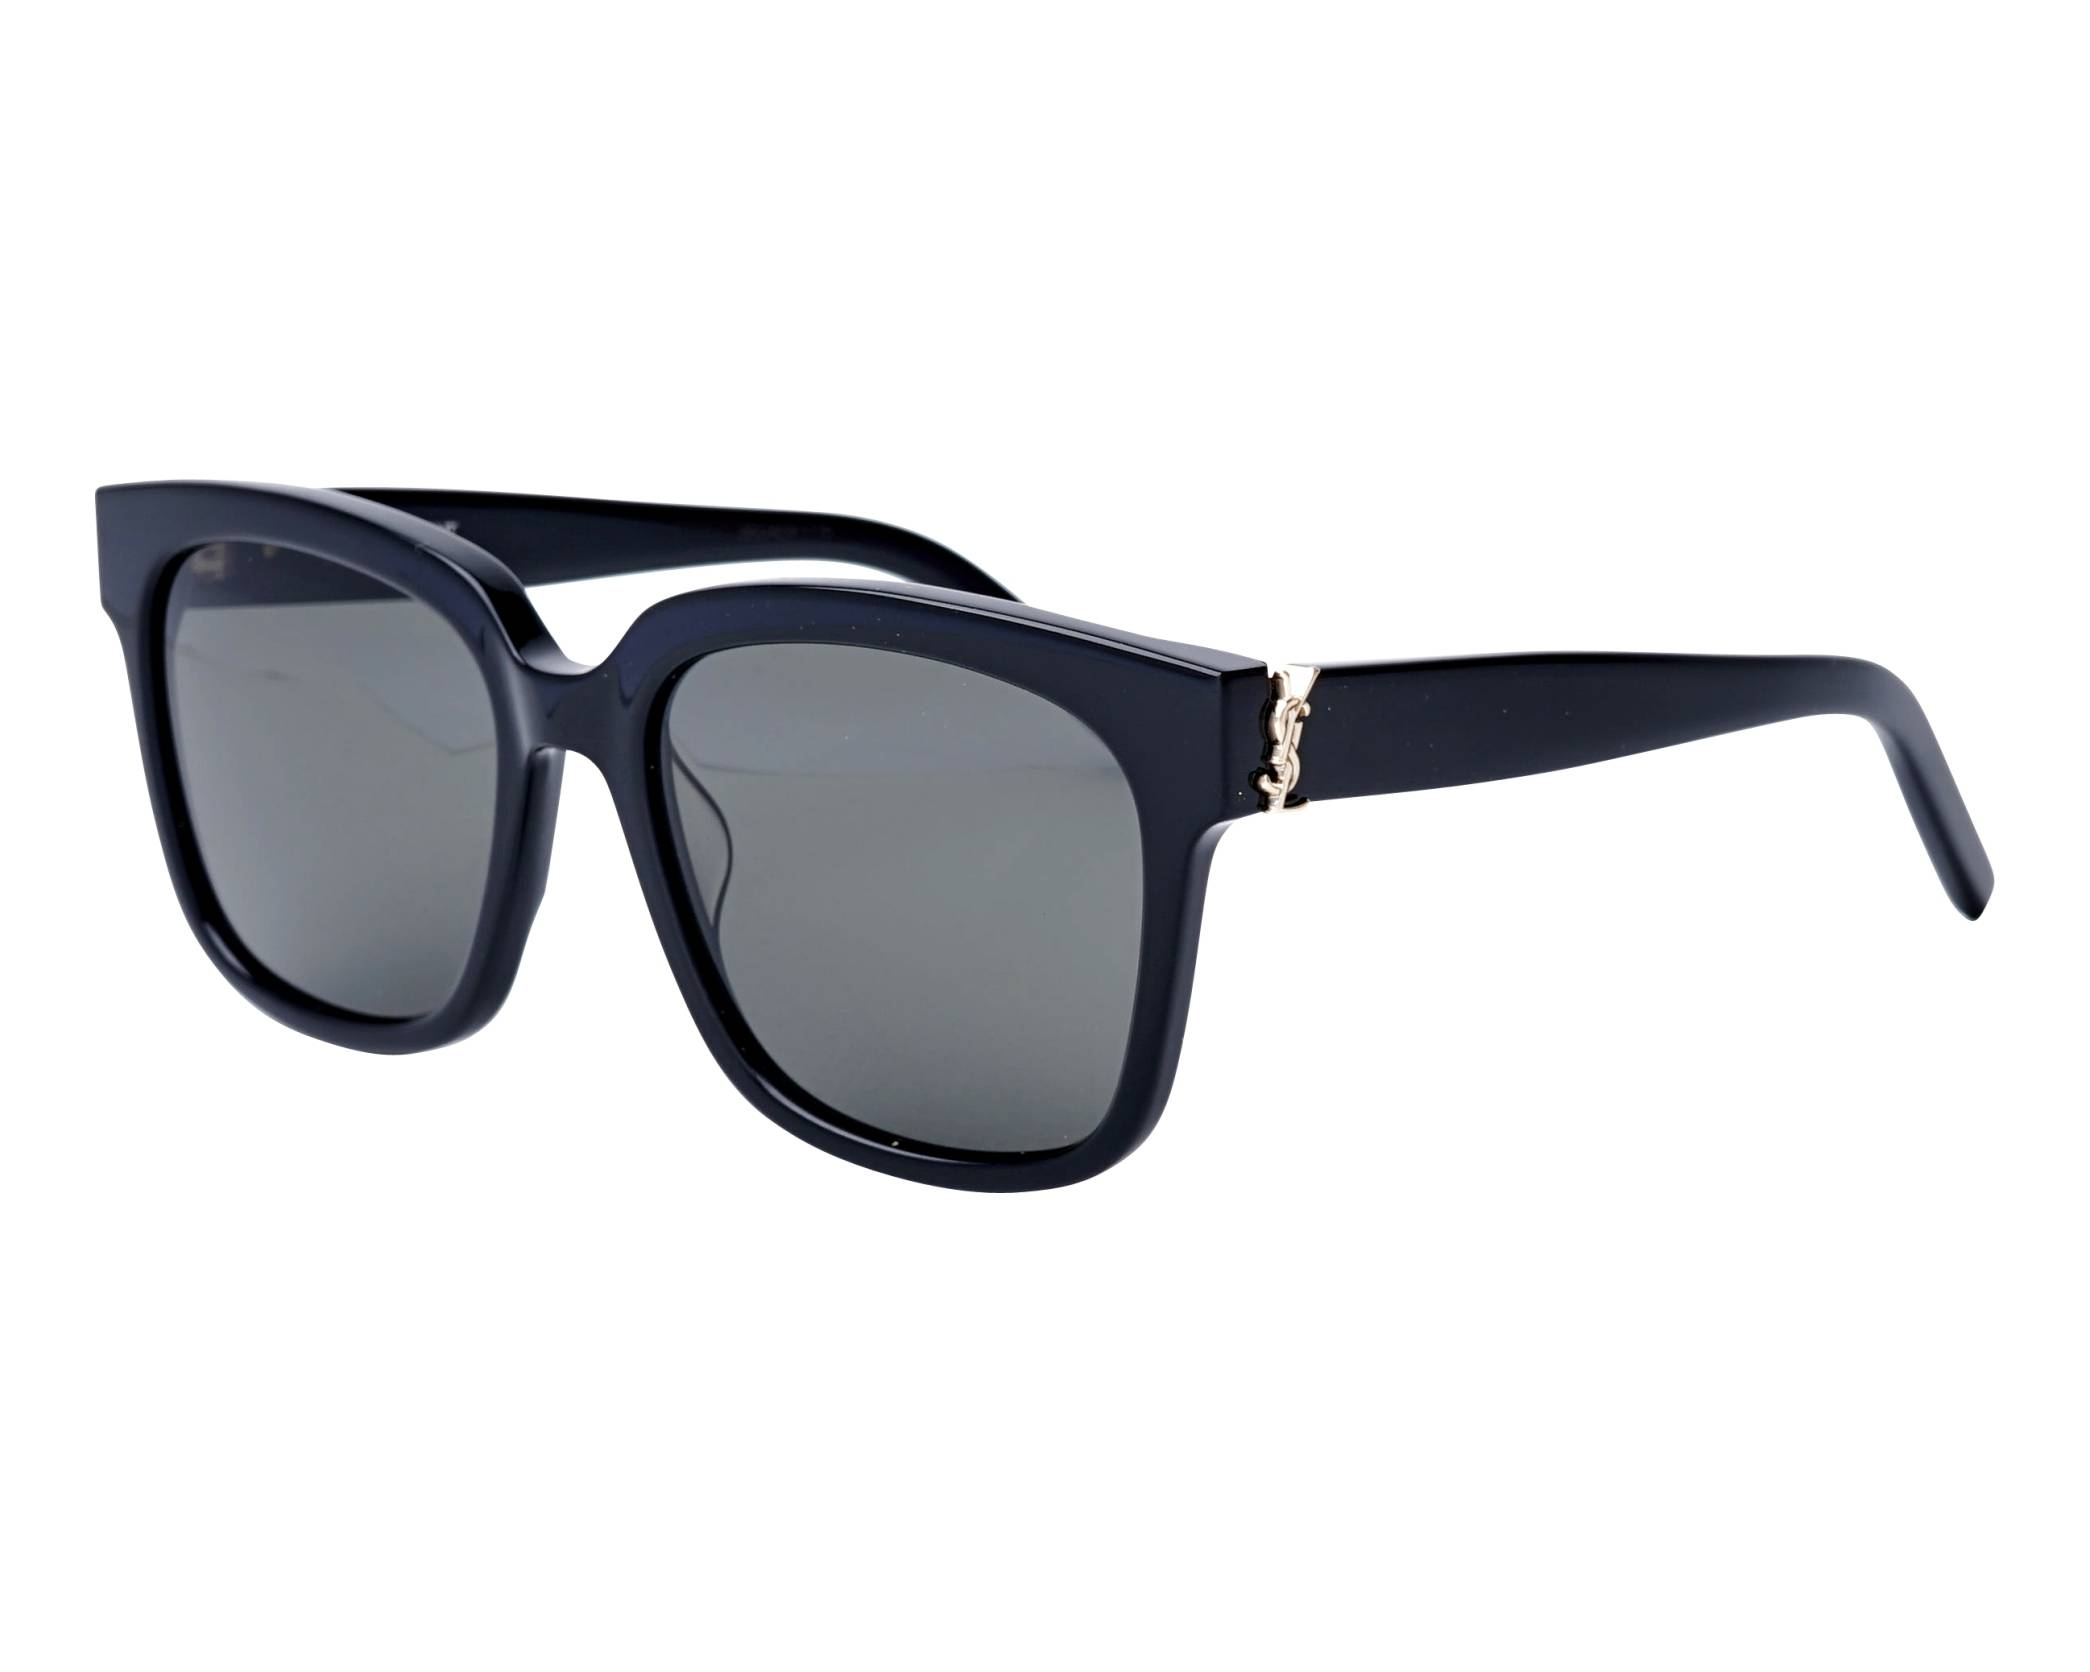 1349858f596 Sunglasses Yves Saint Laurent SL-M-40 003 54-18 Black profile view